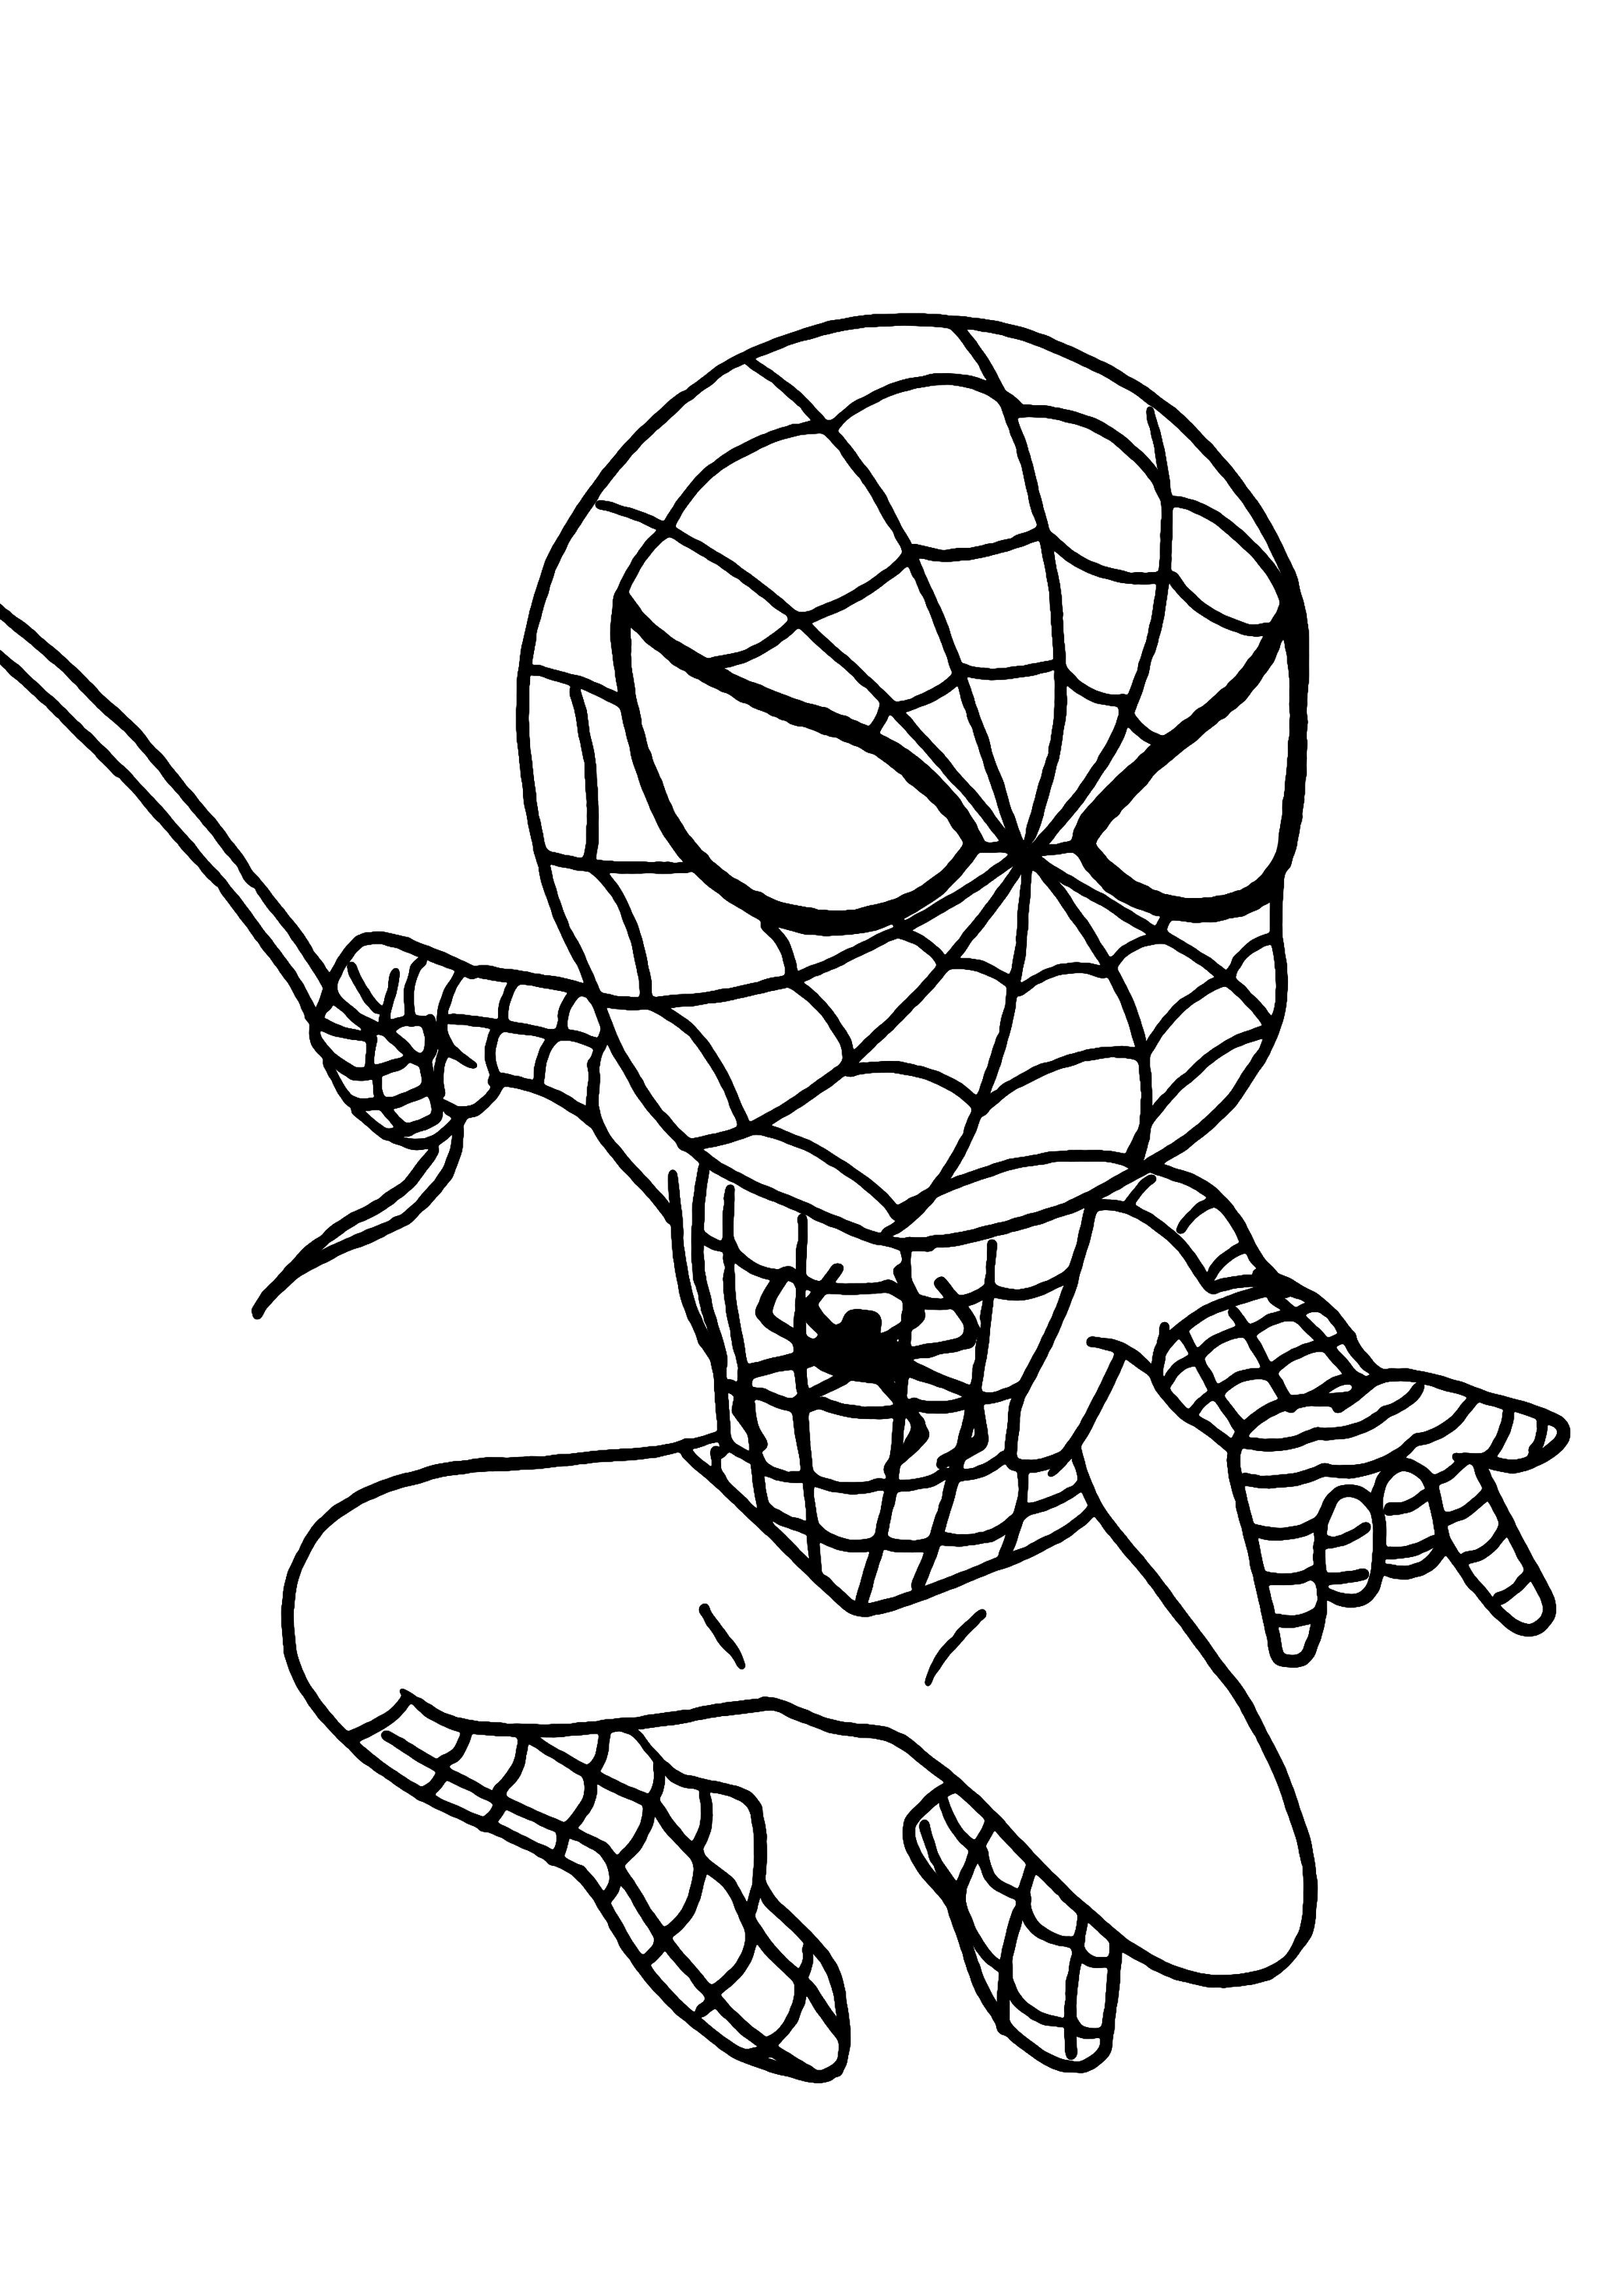 spiderman nom du dessin coloriage spiderman catégorie coloriages